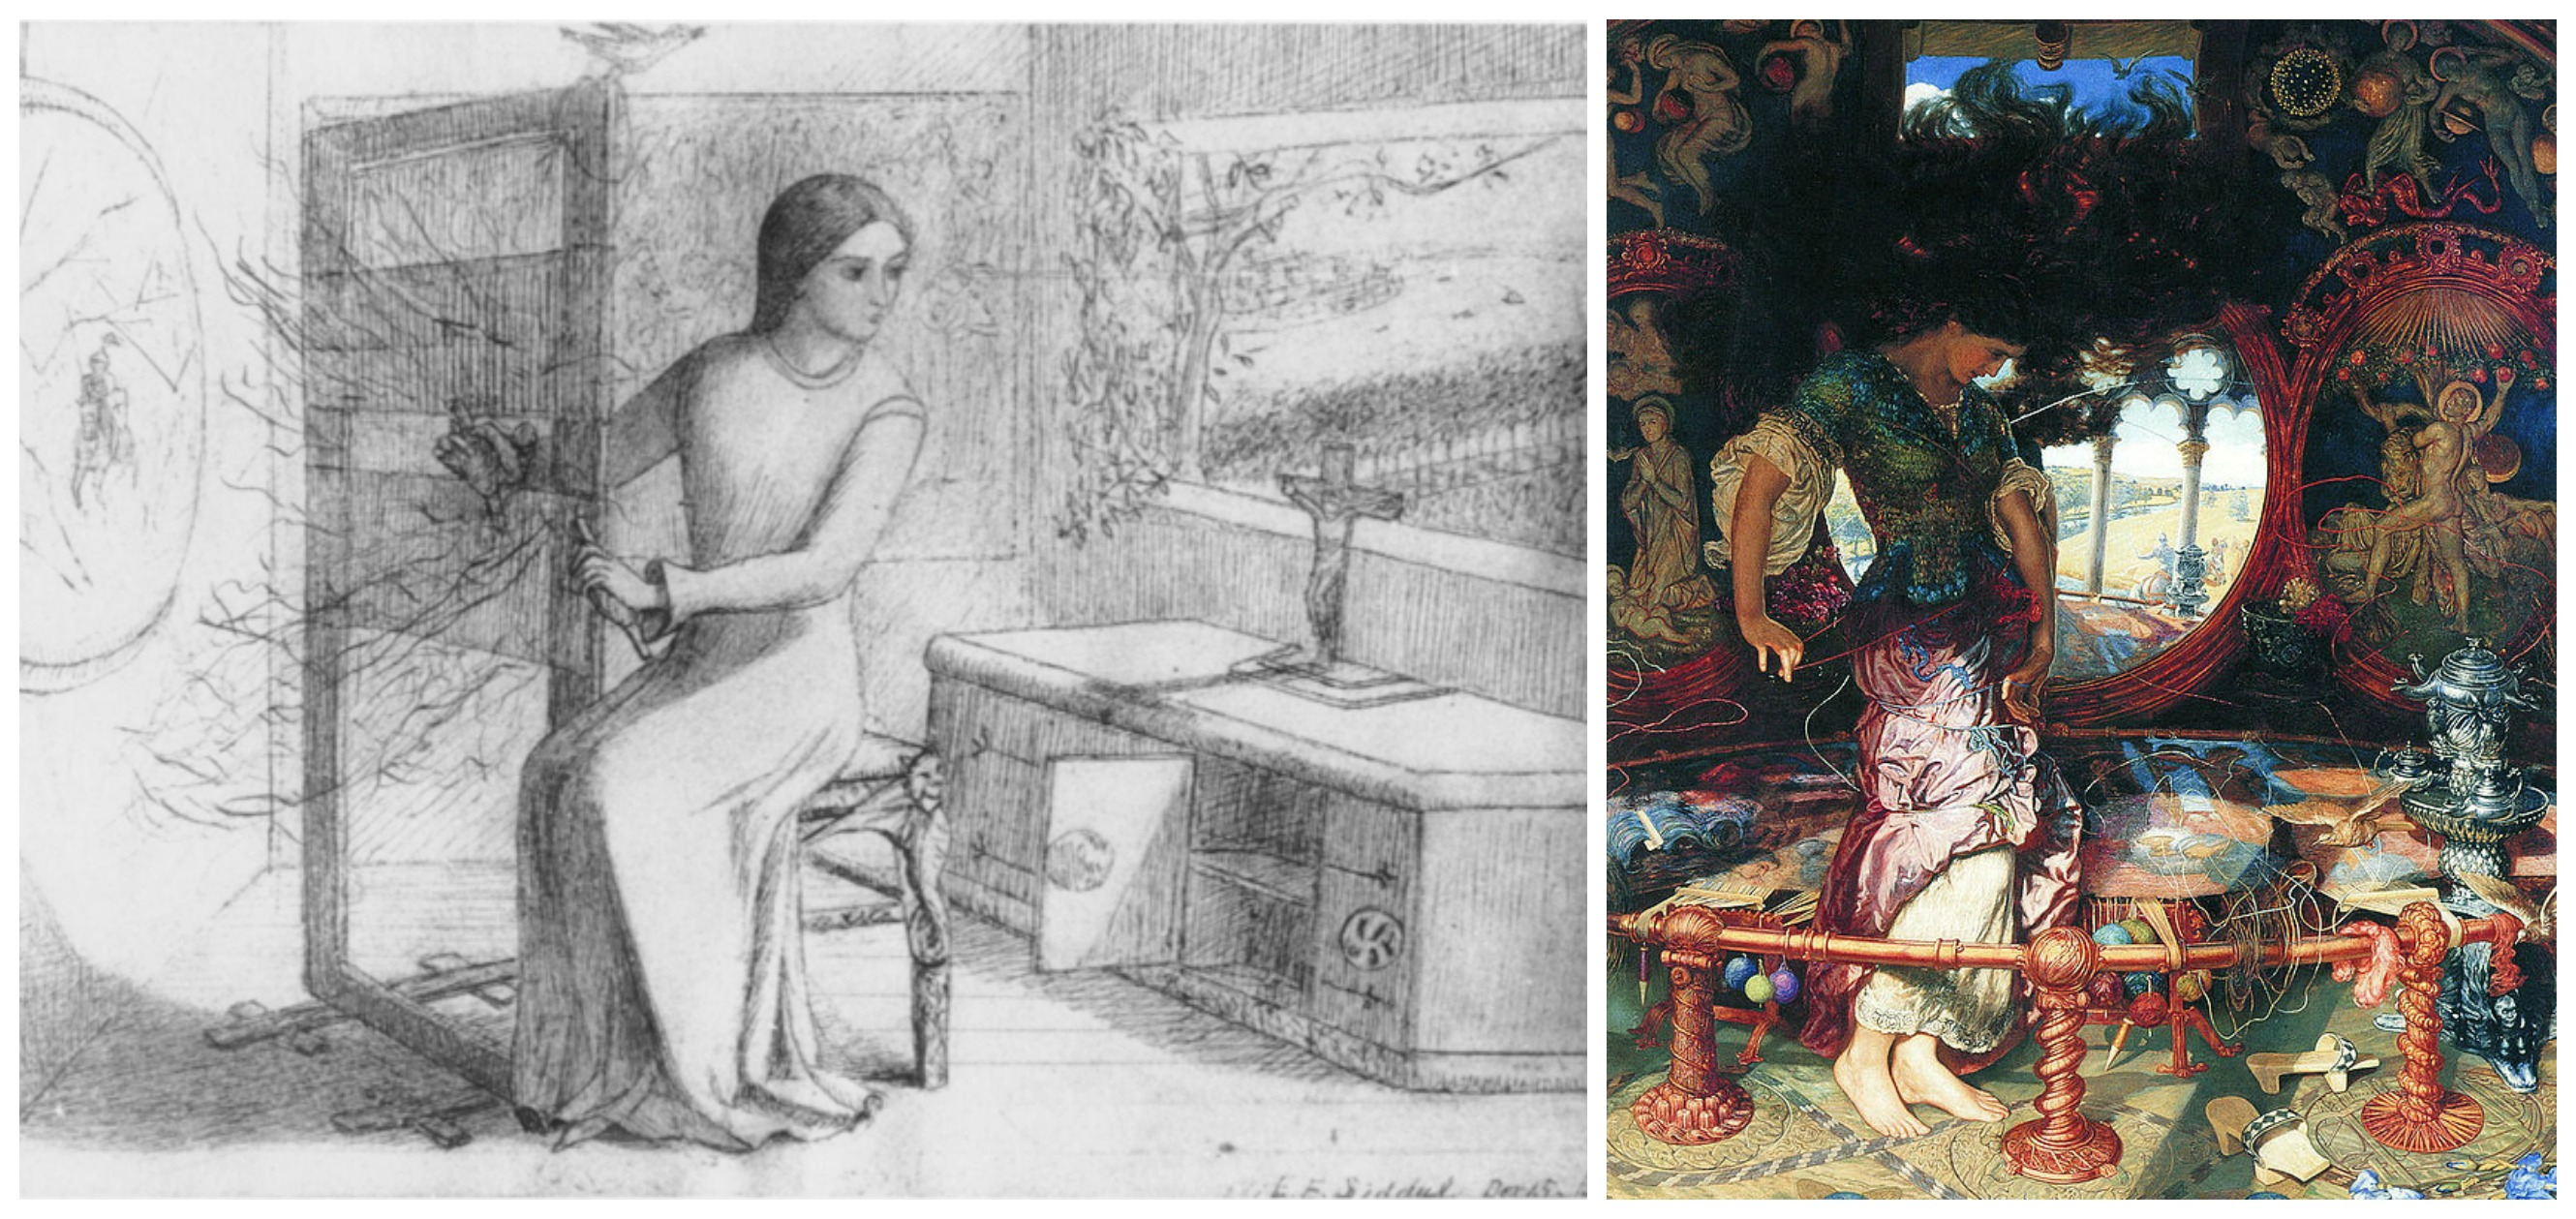 a literary comparison of ode on a grecian urn by keats and the lady of shalott by tennyson Poetry- beauty essential question the lady of shalott (alfred, lord tennyson) the raven explanation and analysis of ode on a grecian urn (john keats) 7.